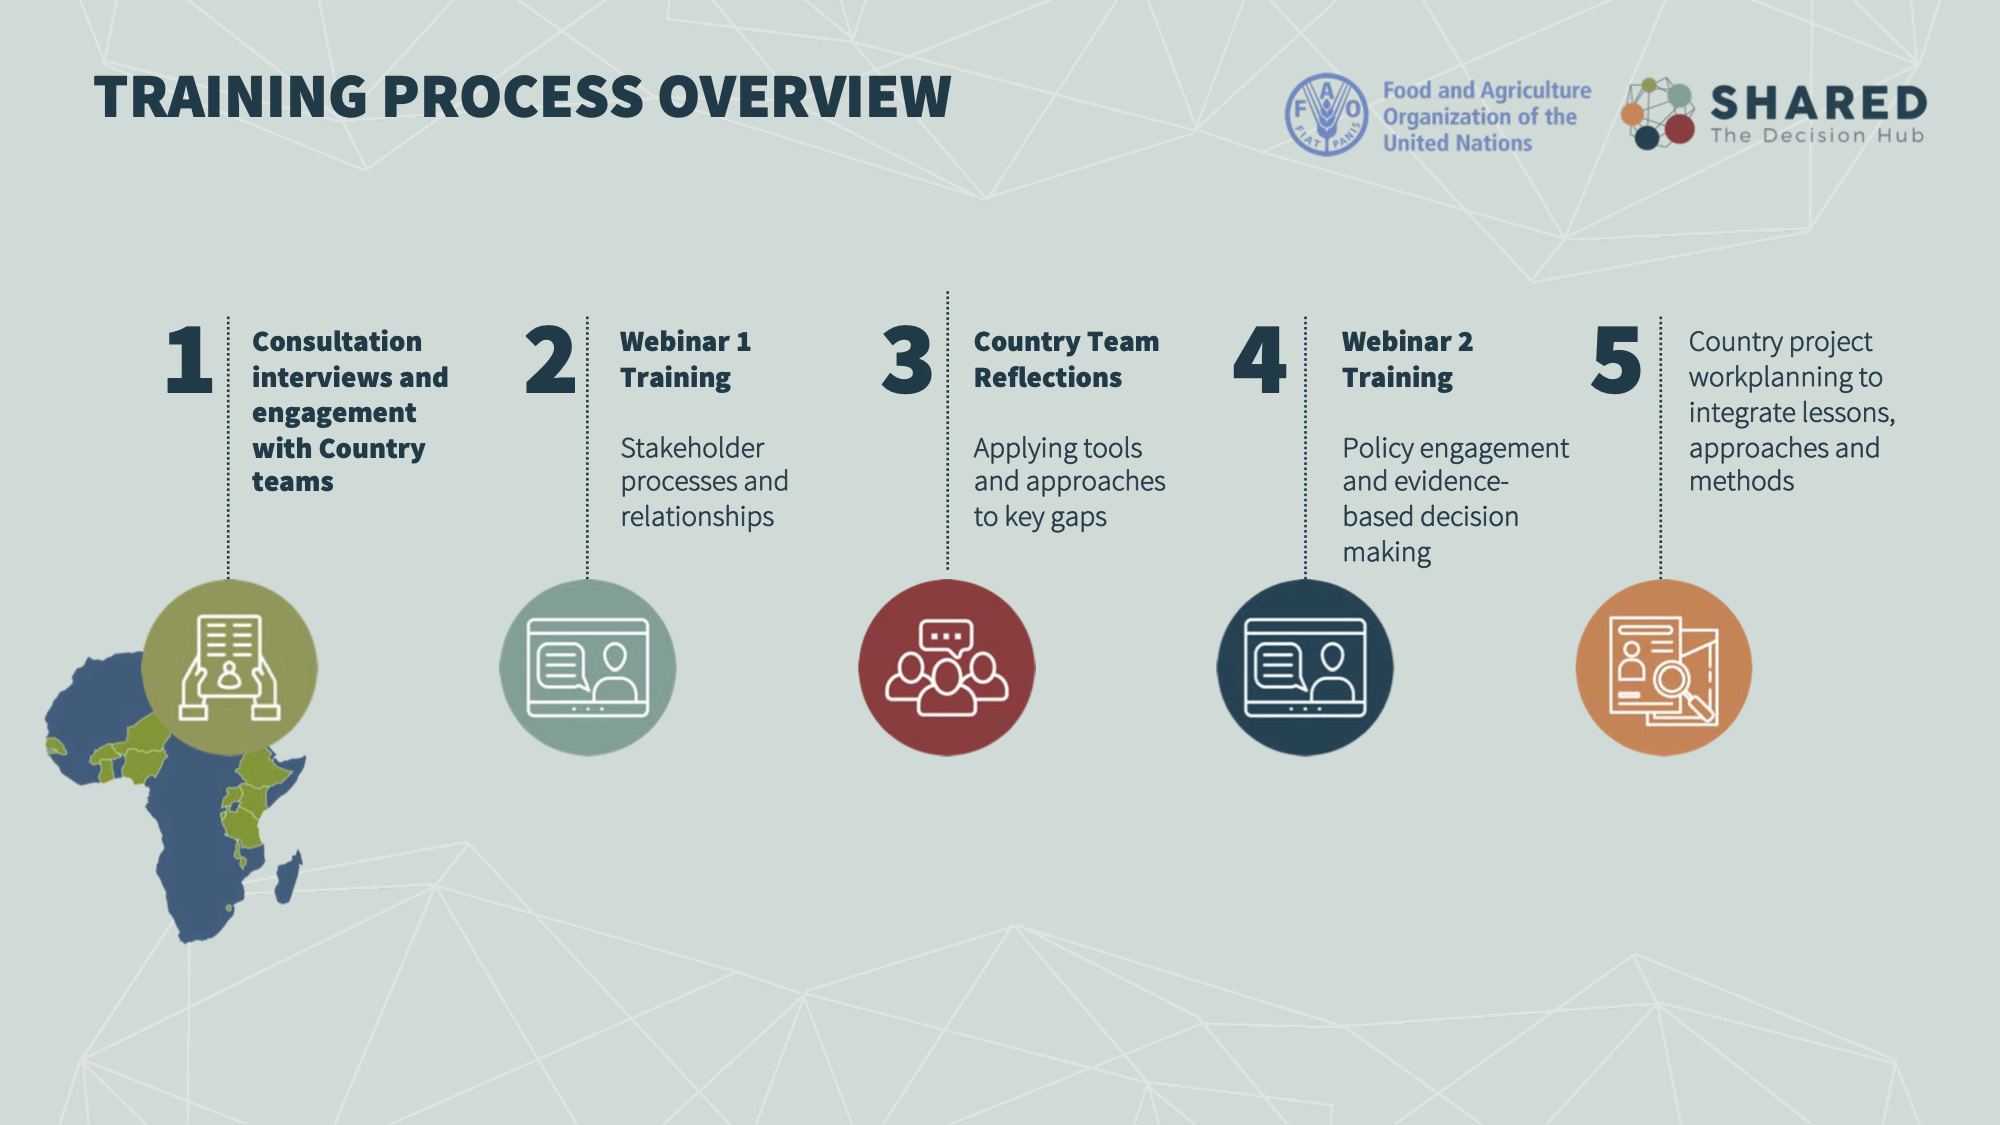 The FAO SHARED training will take place over the span of two weeks, consisting of 2 webinars followed by periods of at-home practice and workplanning.